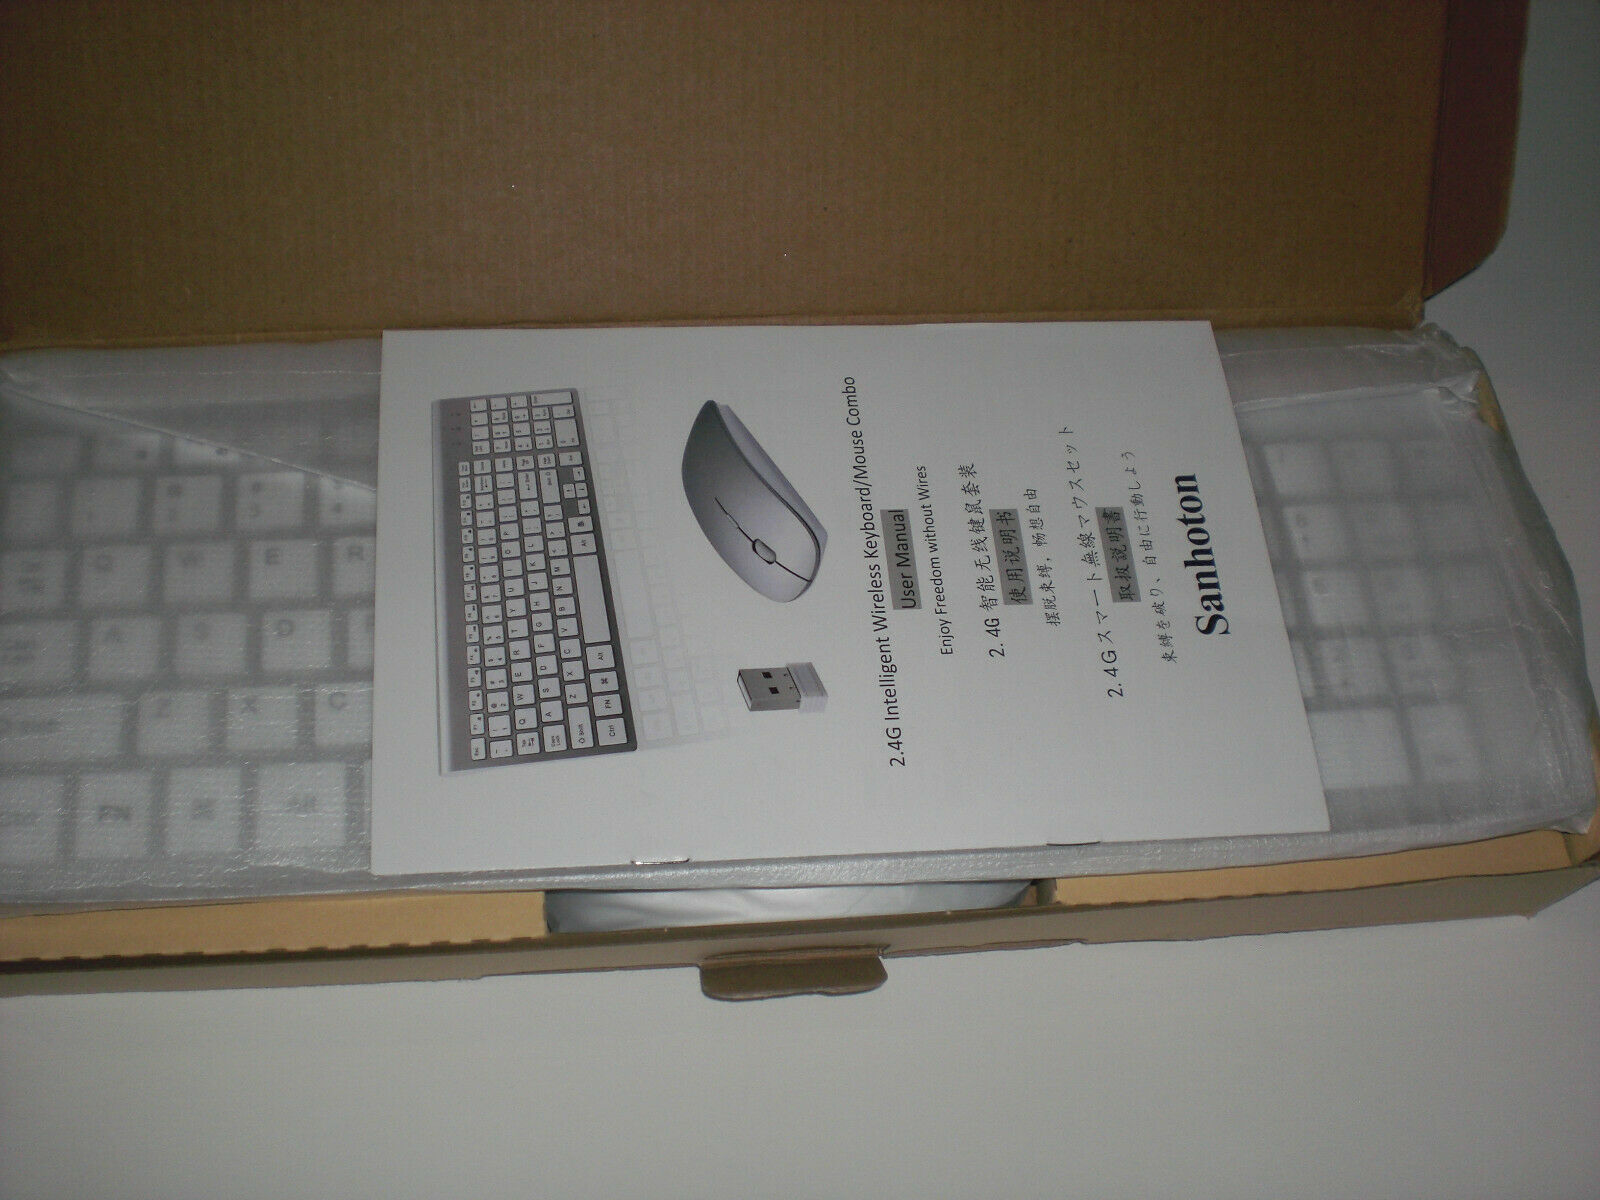 Wireless Keyboard Mouse, Sanhoton 2.4G Ultra Thin Portable Whisper New-Other - $22.00